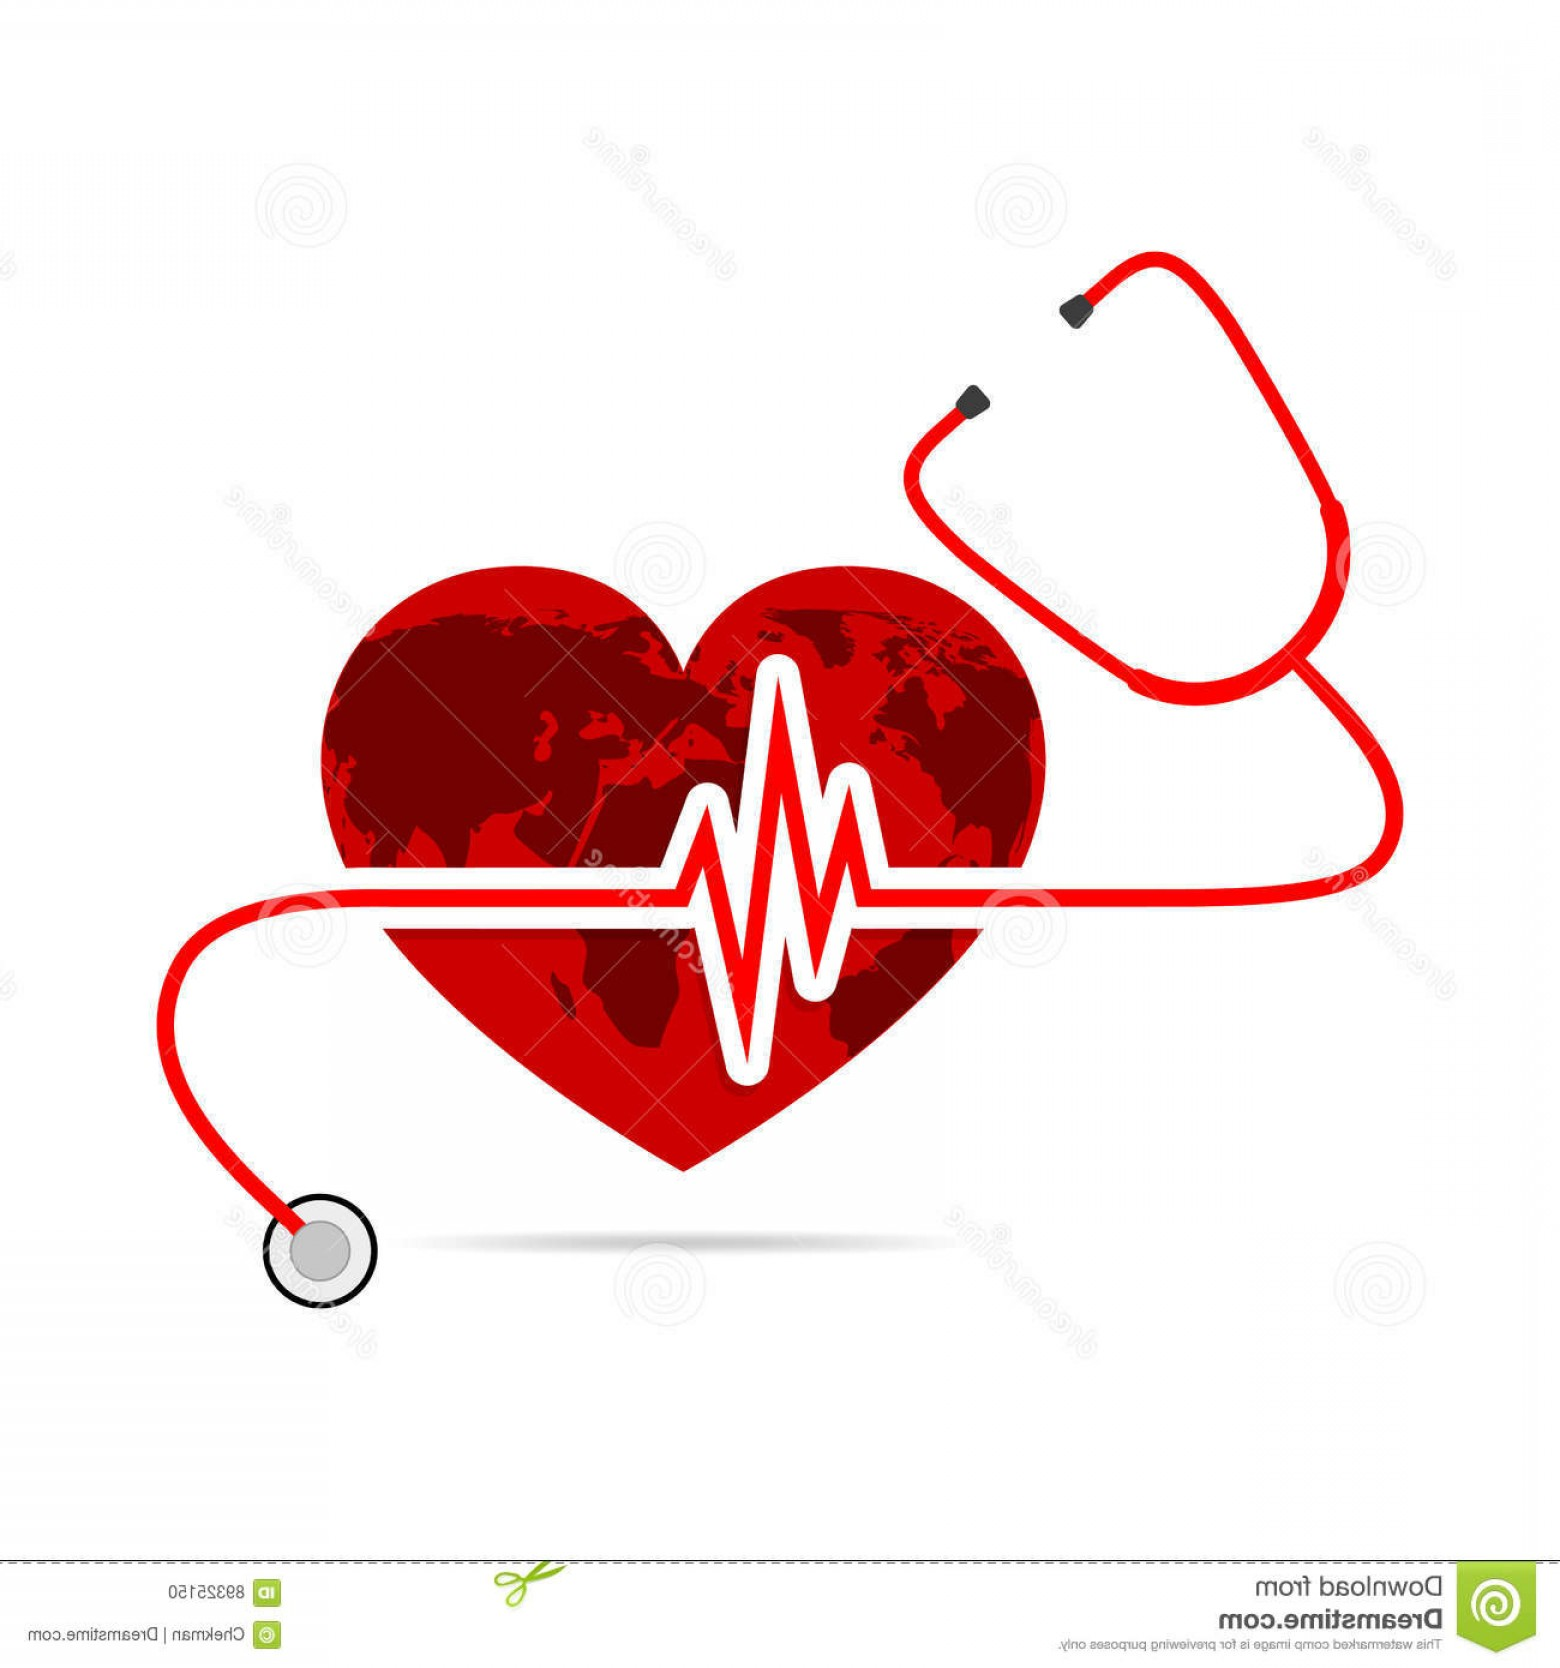 Stethoscope With Heart Vector Art: Stock Illustration Globe Earth Stethoscope Heartbeat Sign Vector Illustration World Health Day Form Heart White Background Image